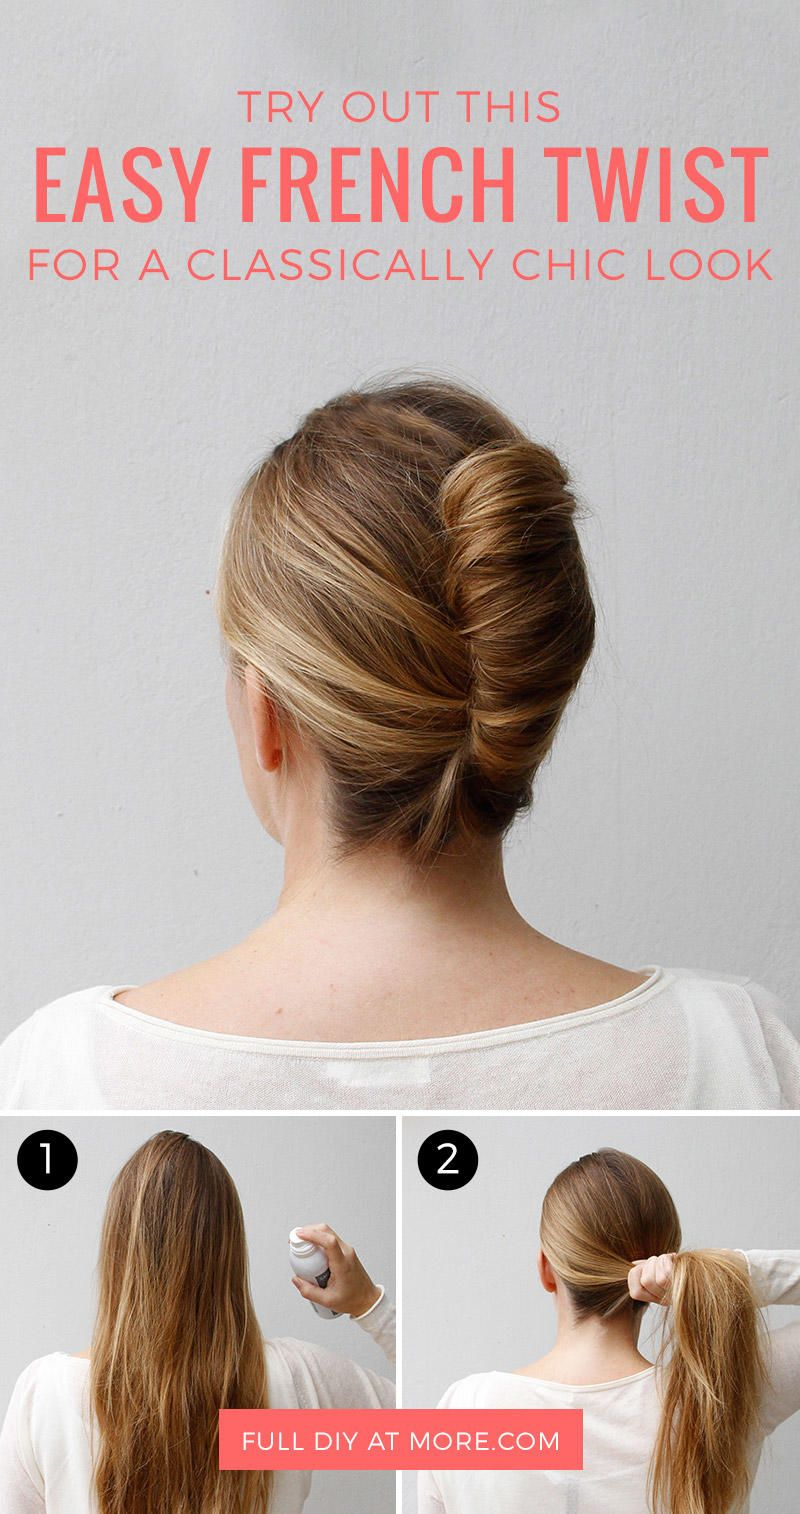 Miraculous Create A Beautiful French Twist With This Goody Tutorial Step 1 Short Hairstyles For Black Women Fulllsitofus